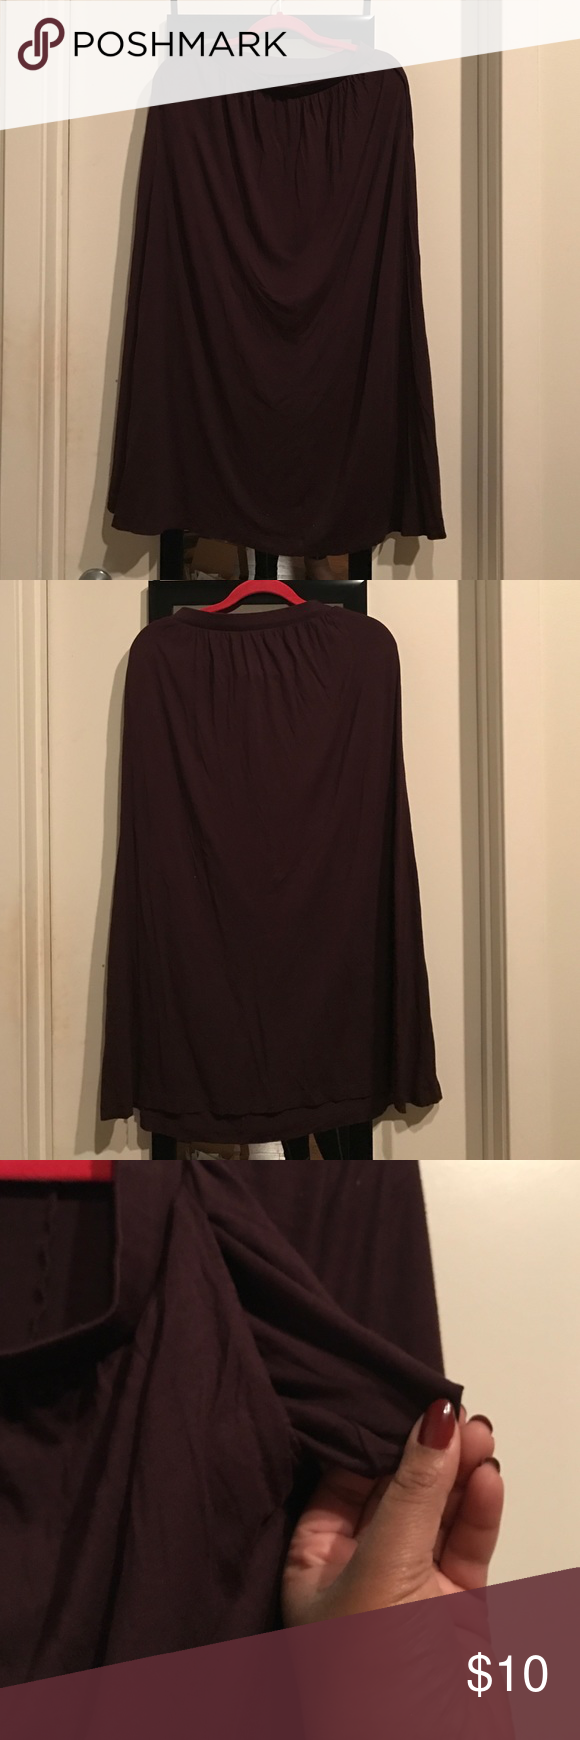 Purple H&M maxi skirt with pockets 🌻 Bo.ho. Chic. <- this skirt is all about look great casual or dressy casual with the right accessories. Cinched at the waist and ankle length on me (I'm 5ft 8). Open to offers! Better deals when you bundle! H&M Skirts Maxi